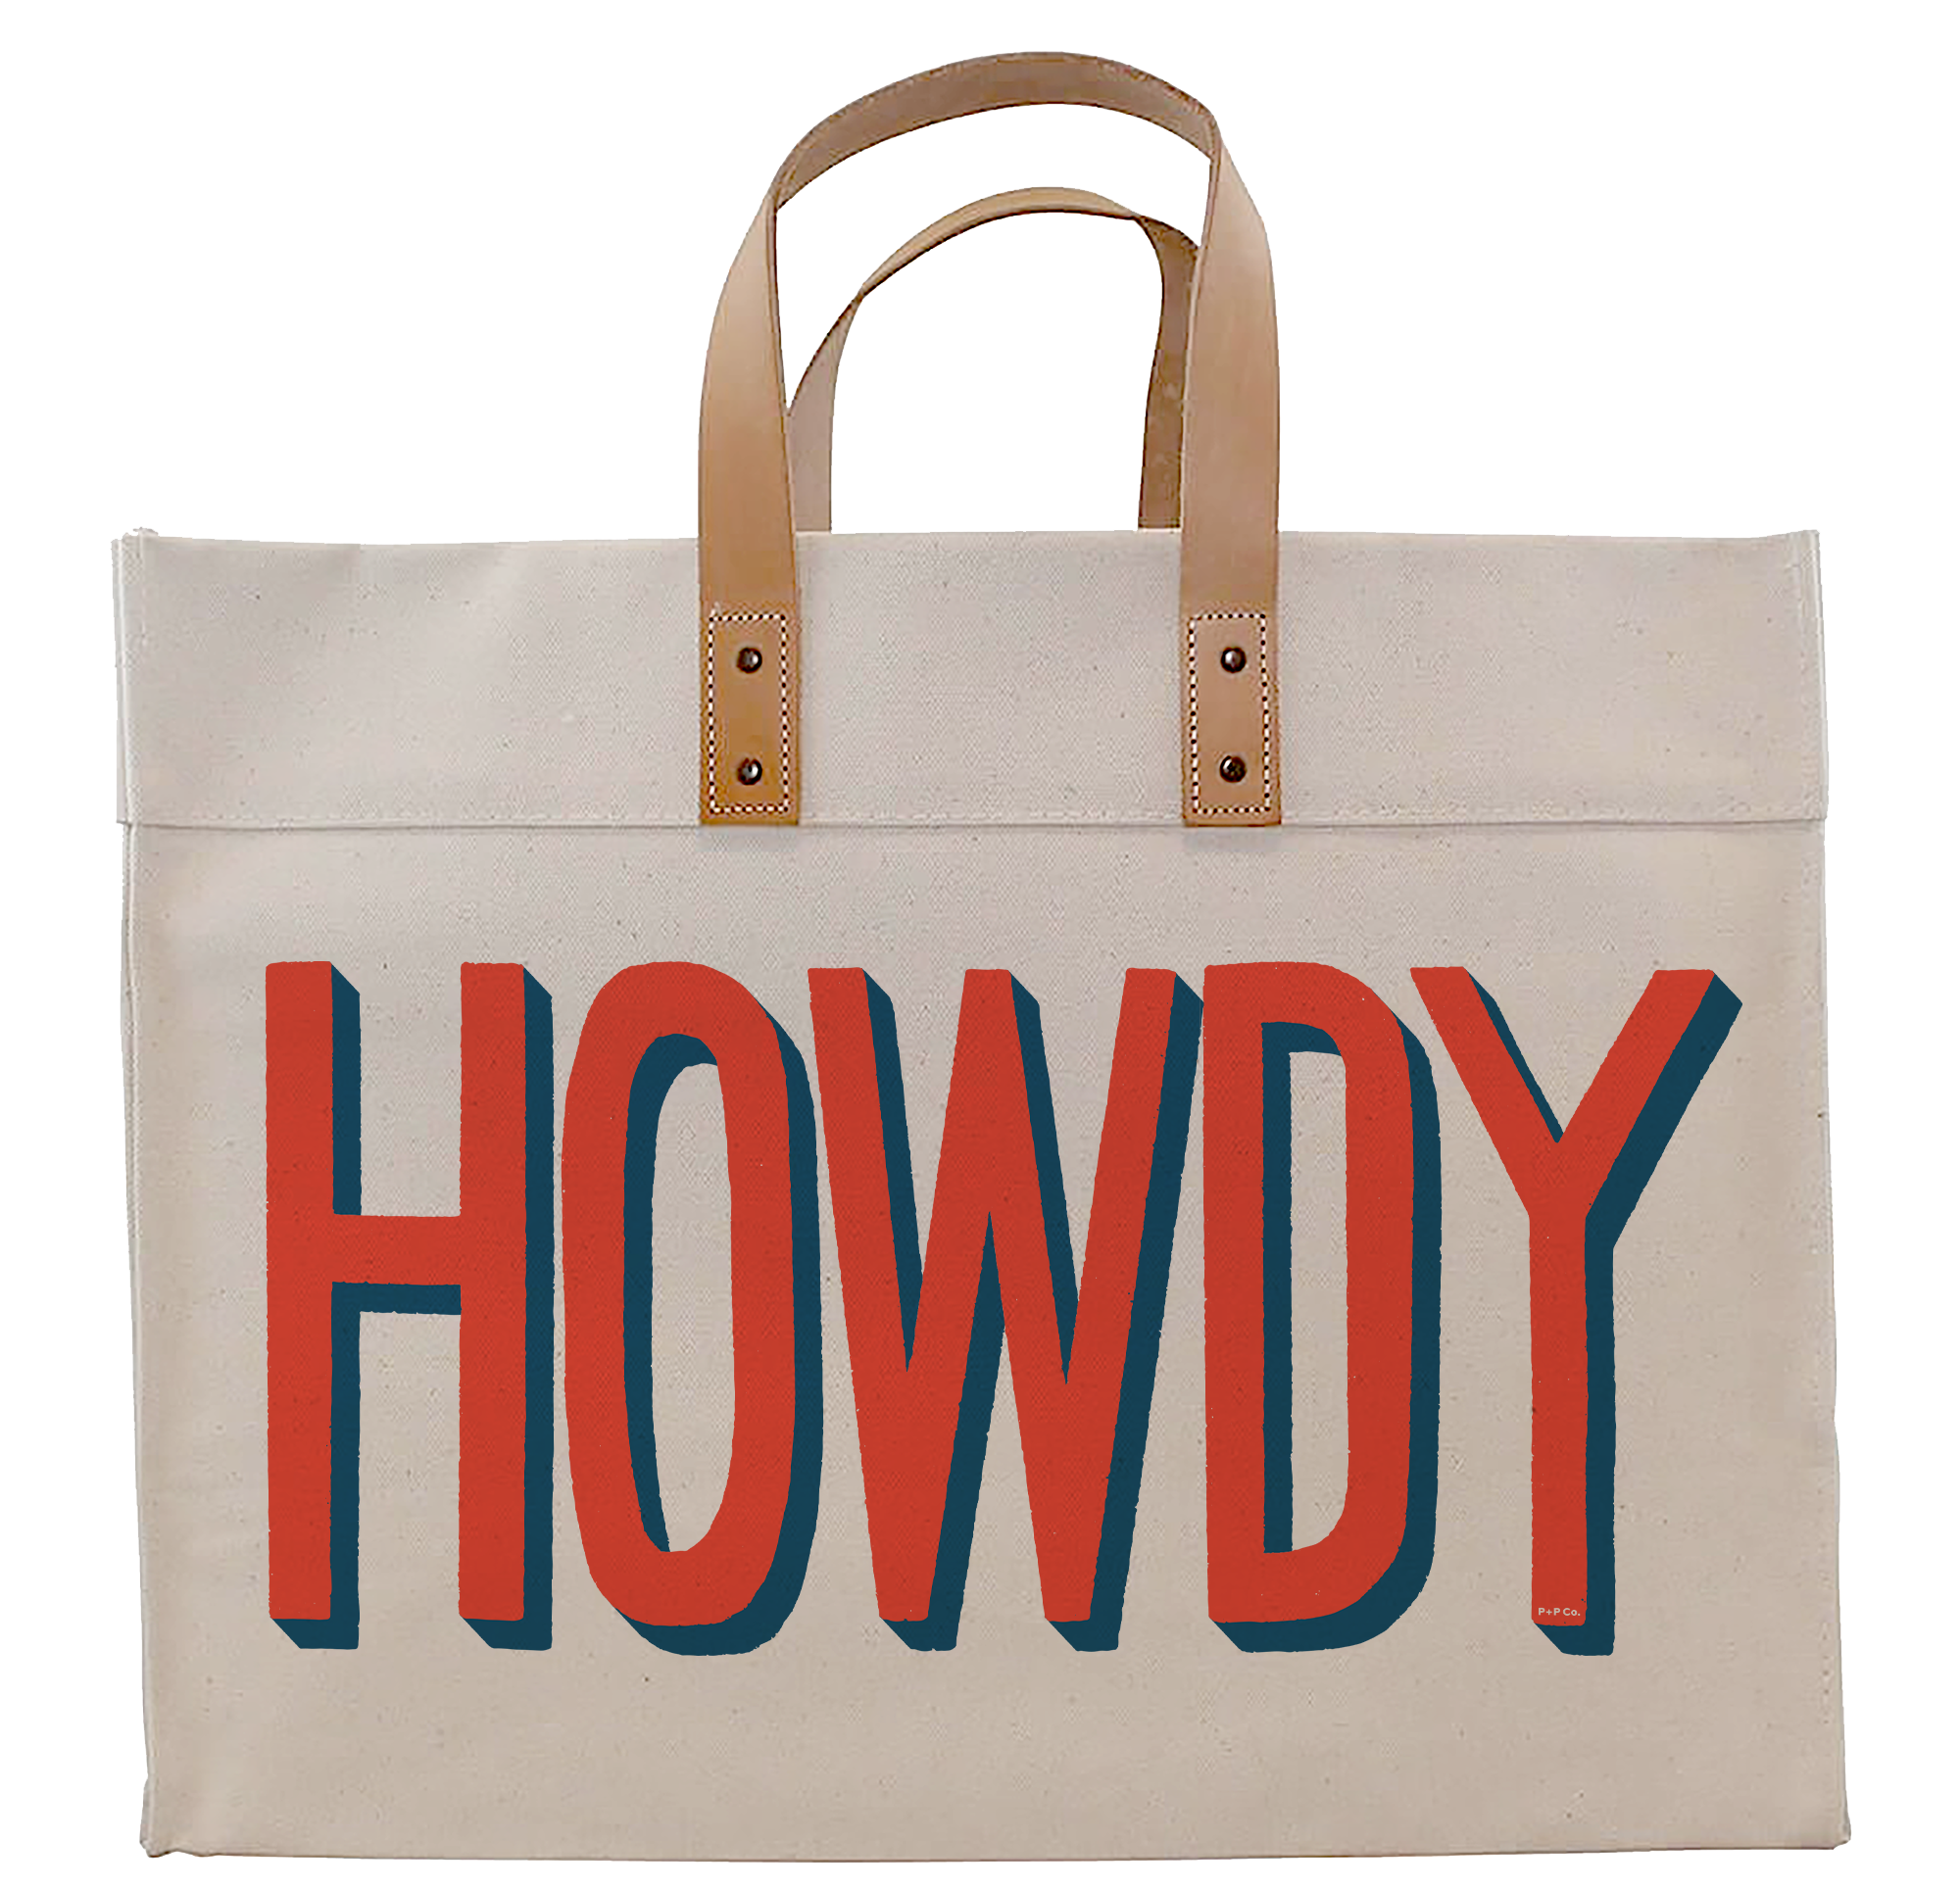 Howdy_Tote_Mock_Up (1) 2.png